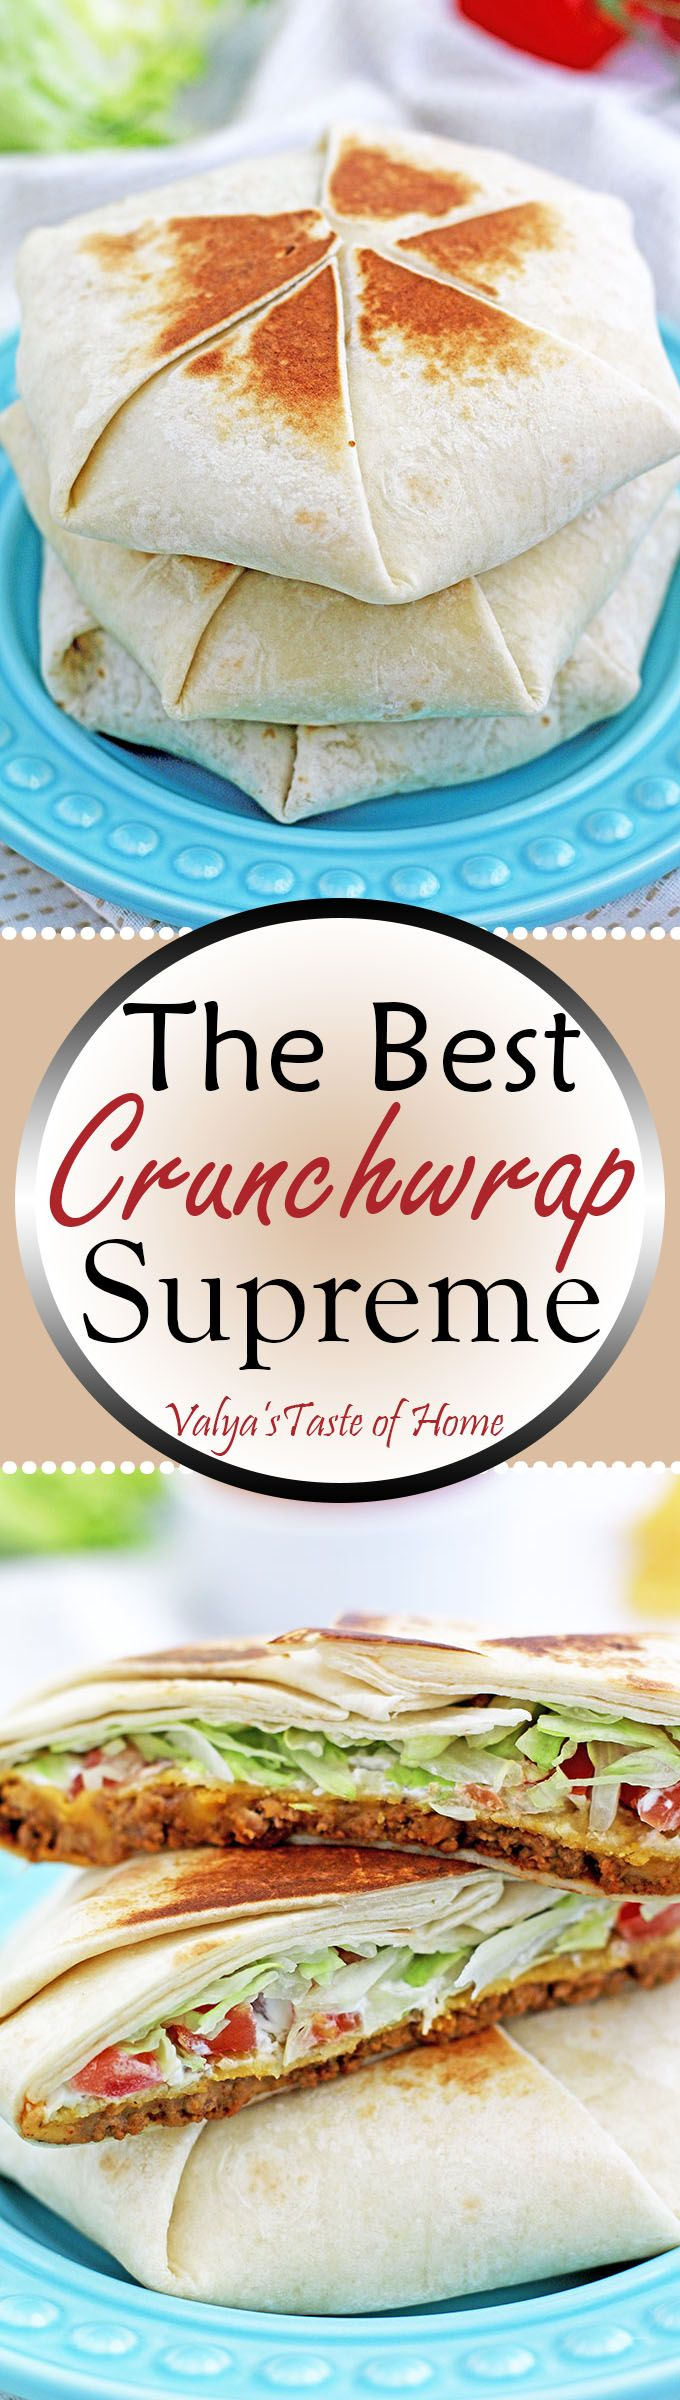 My family loves this Crunchwrap very much so I wanted to create this well-loved meal at home in a cleaner and healthier way. Tastes just like Taco Bell's, but prepared in a way that you know you can trust, makes it much more delicious and enjoyable.